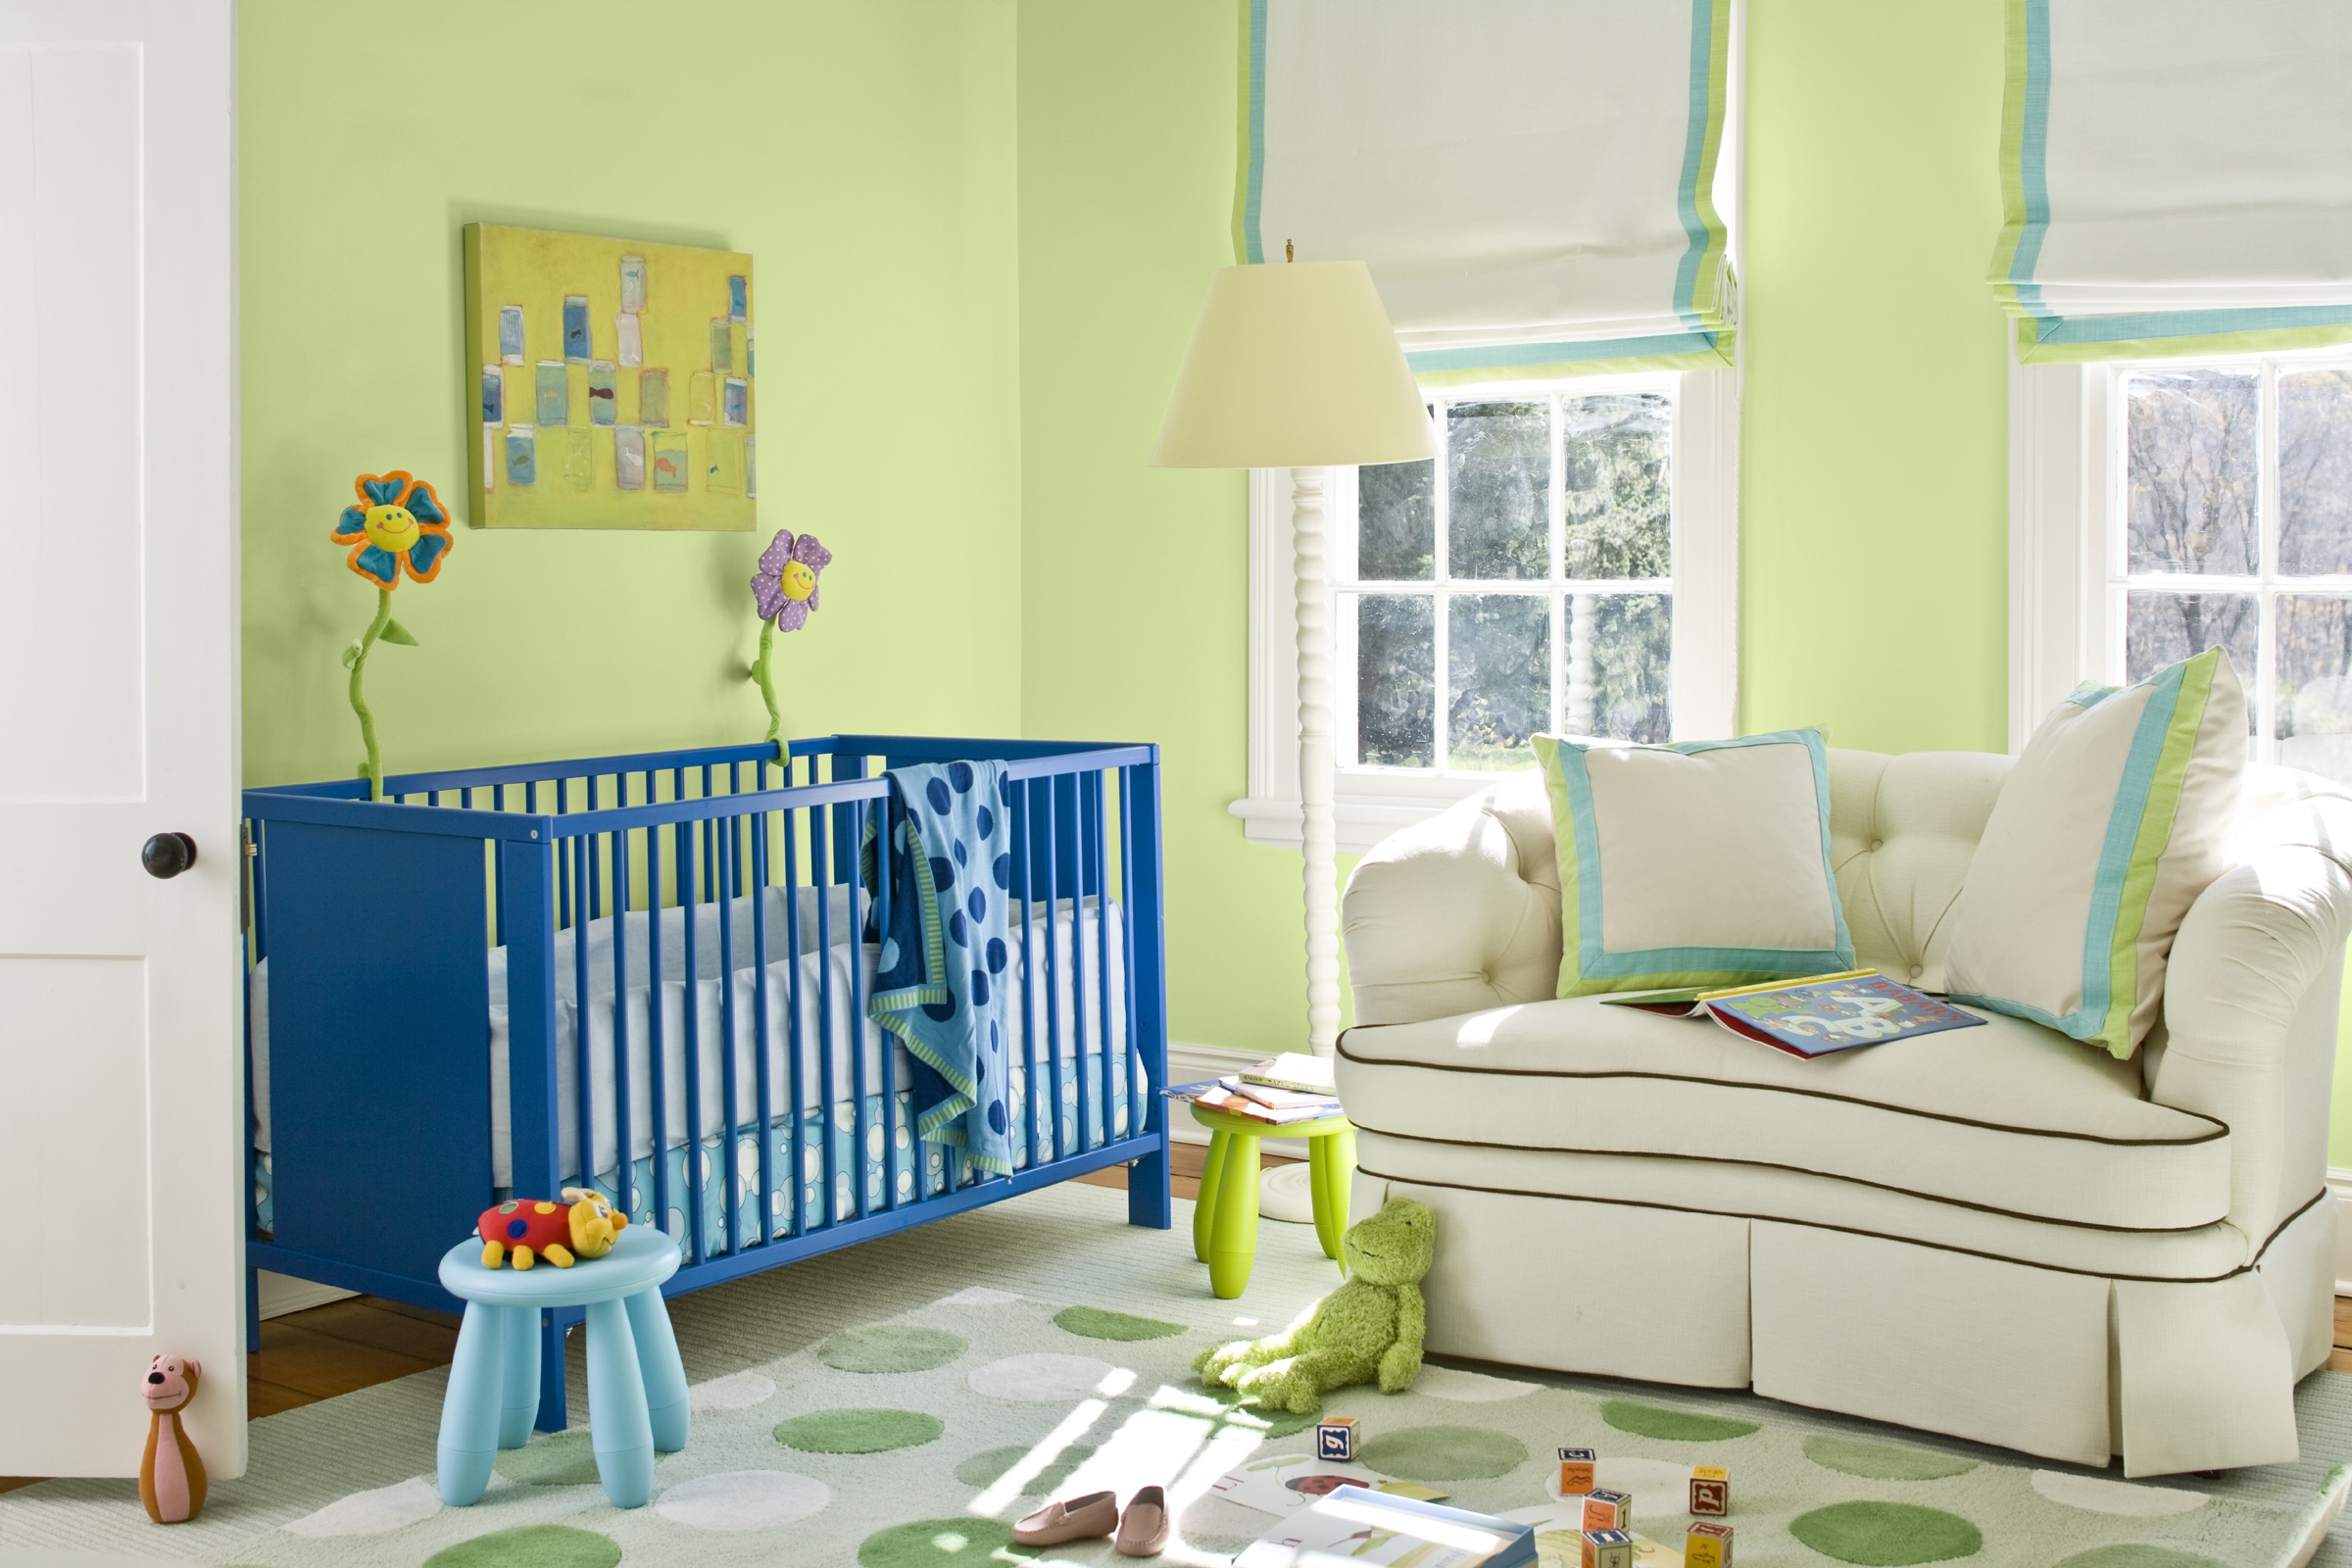 Ociated Press Benjamin Moore Uses A New Waterborne Colorant System That Adds No Toxins To